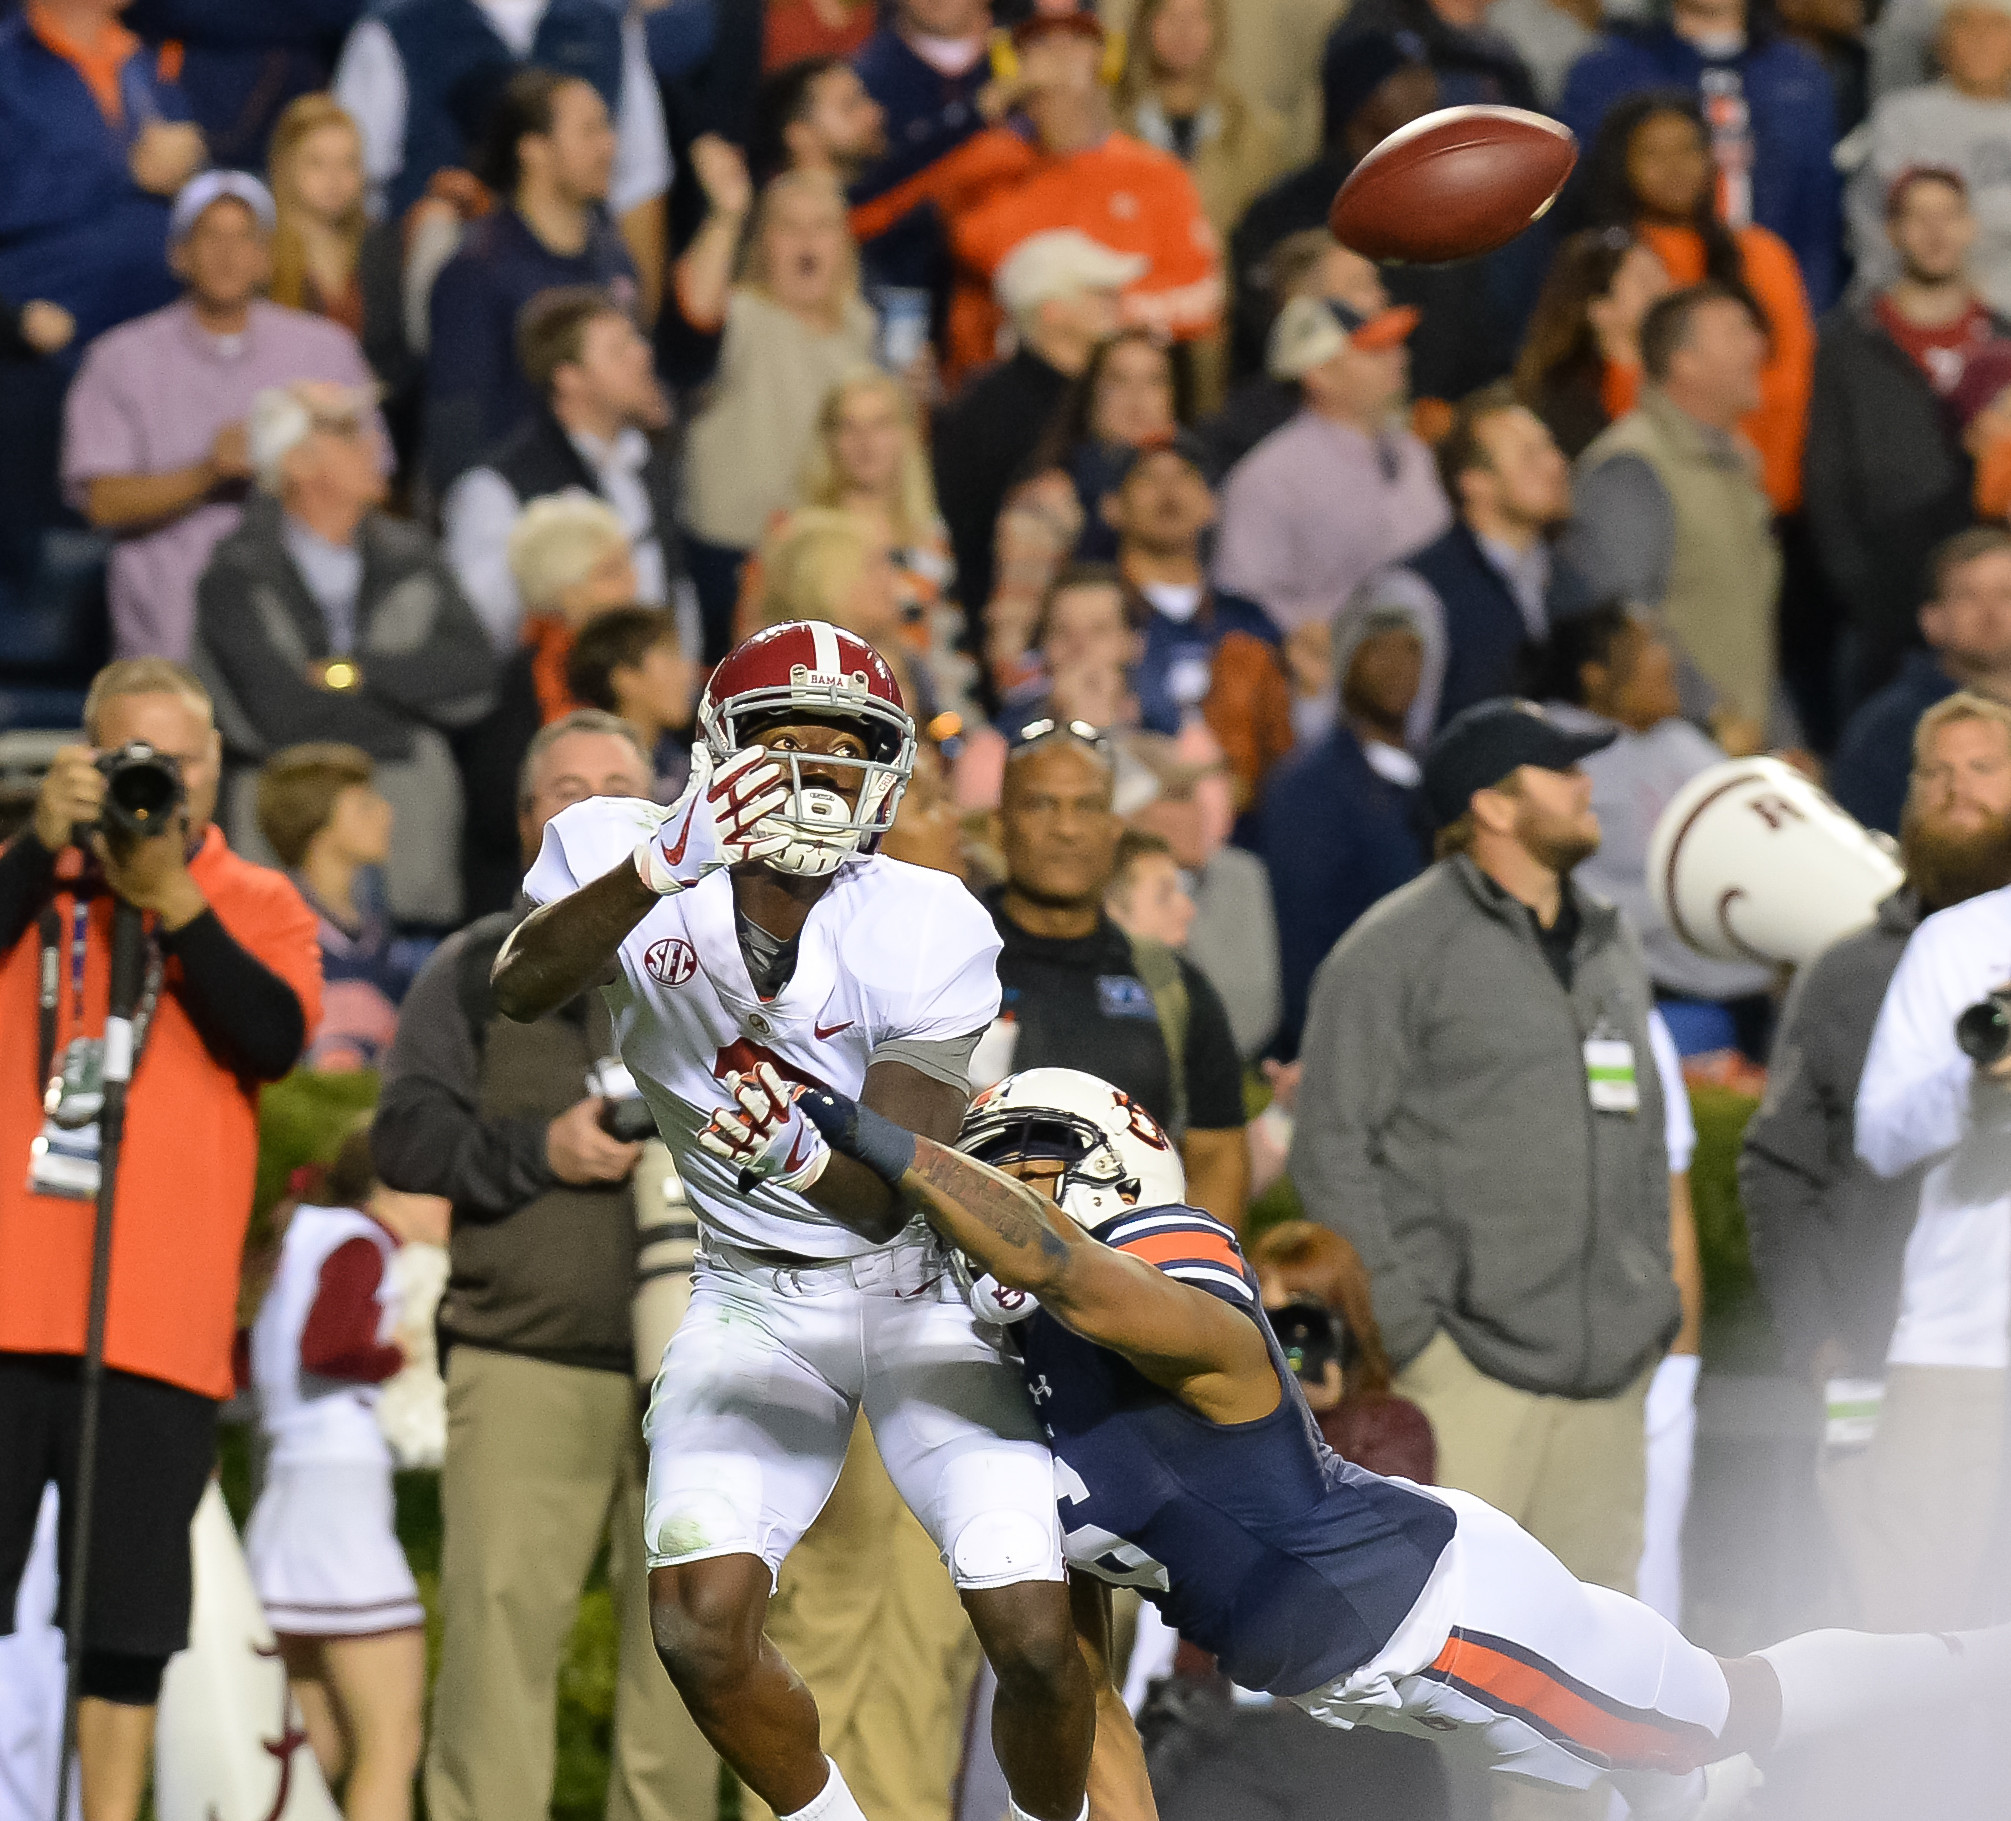 Auburn Tigers defensive back Carlton Davis (6) interferes with Alabama Crimson Tide wide receiver Calvin Ridley (3) during the second half of Saturday's game, at Jordan-Hare Stadium.